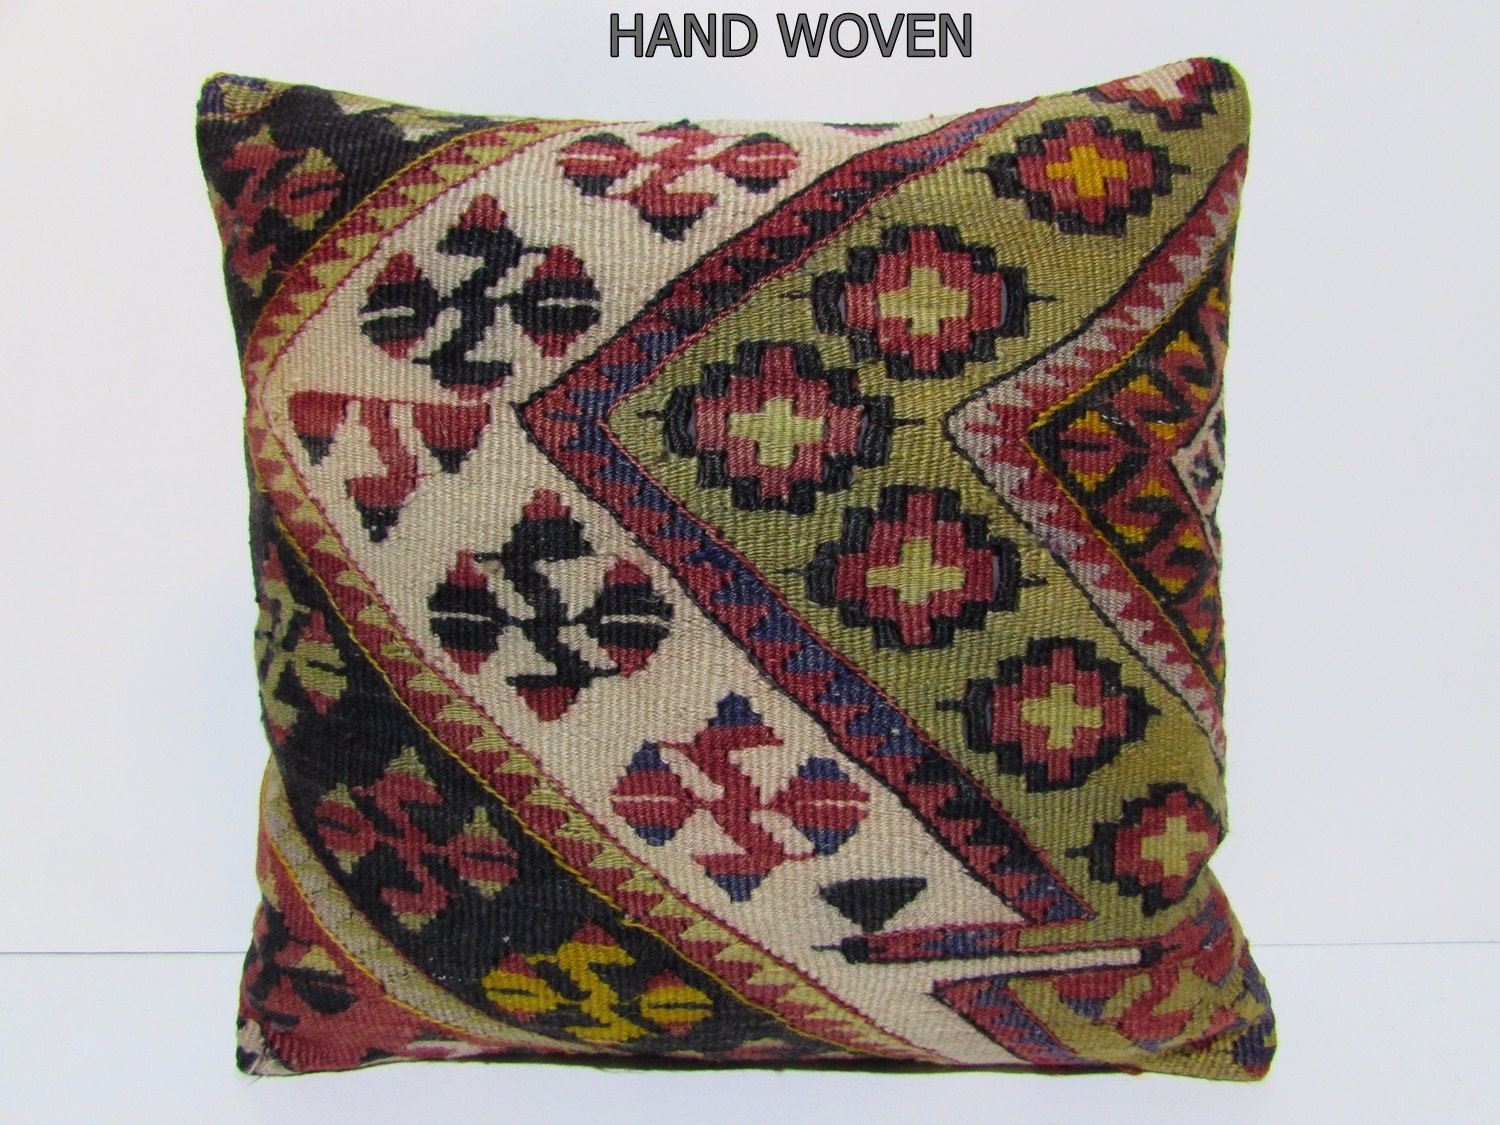 Throw Pillows King Size Bed : 20x20 kilim pillow 20x20 throw pillow 20x20 pillows 50x50